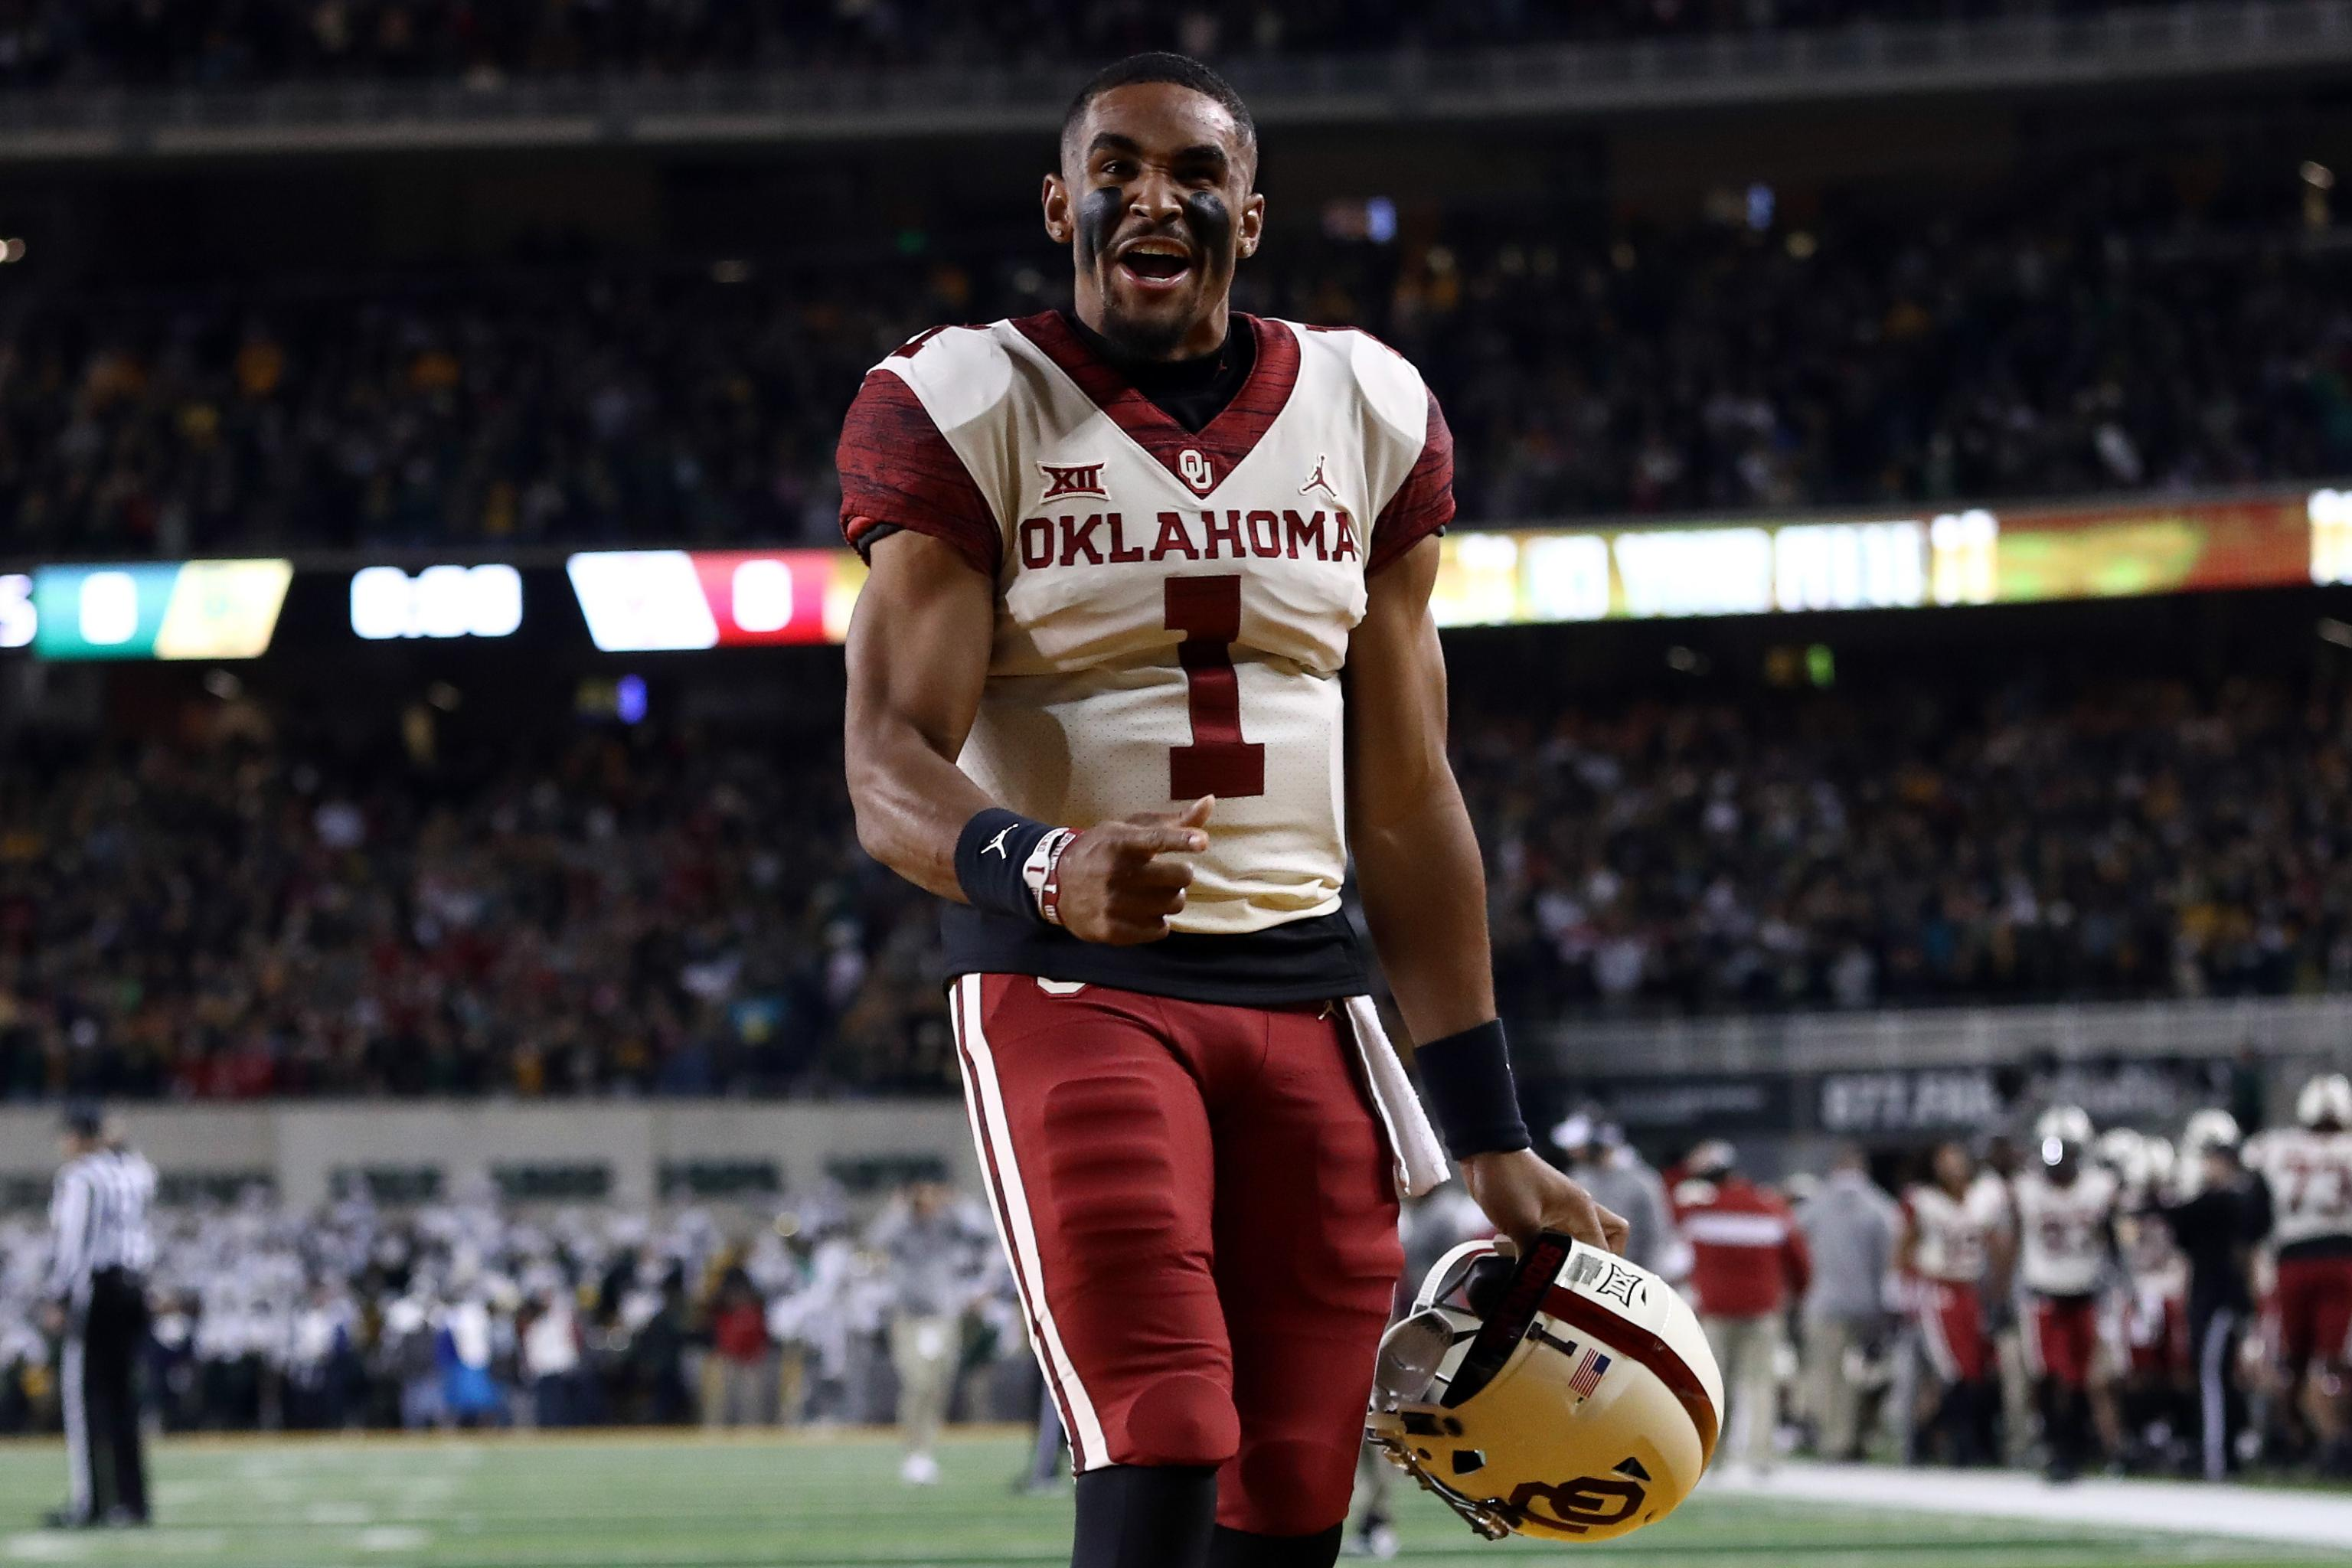 Jalen Hurts No 10 Oklahoma Stun No 13 Baylor With Historic 25 Point Comeback Bleacher Report Latest News Videos And Highlights